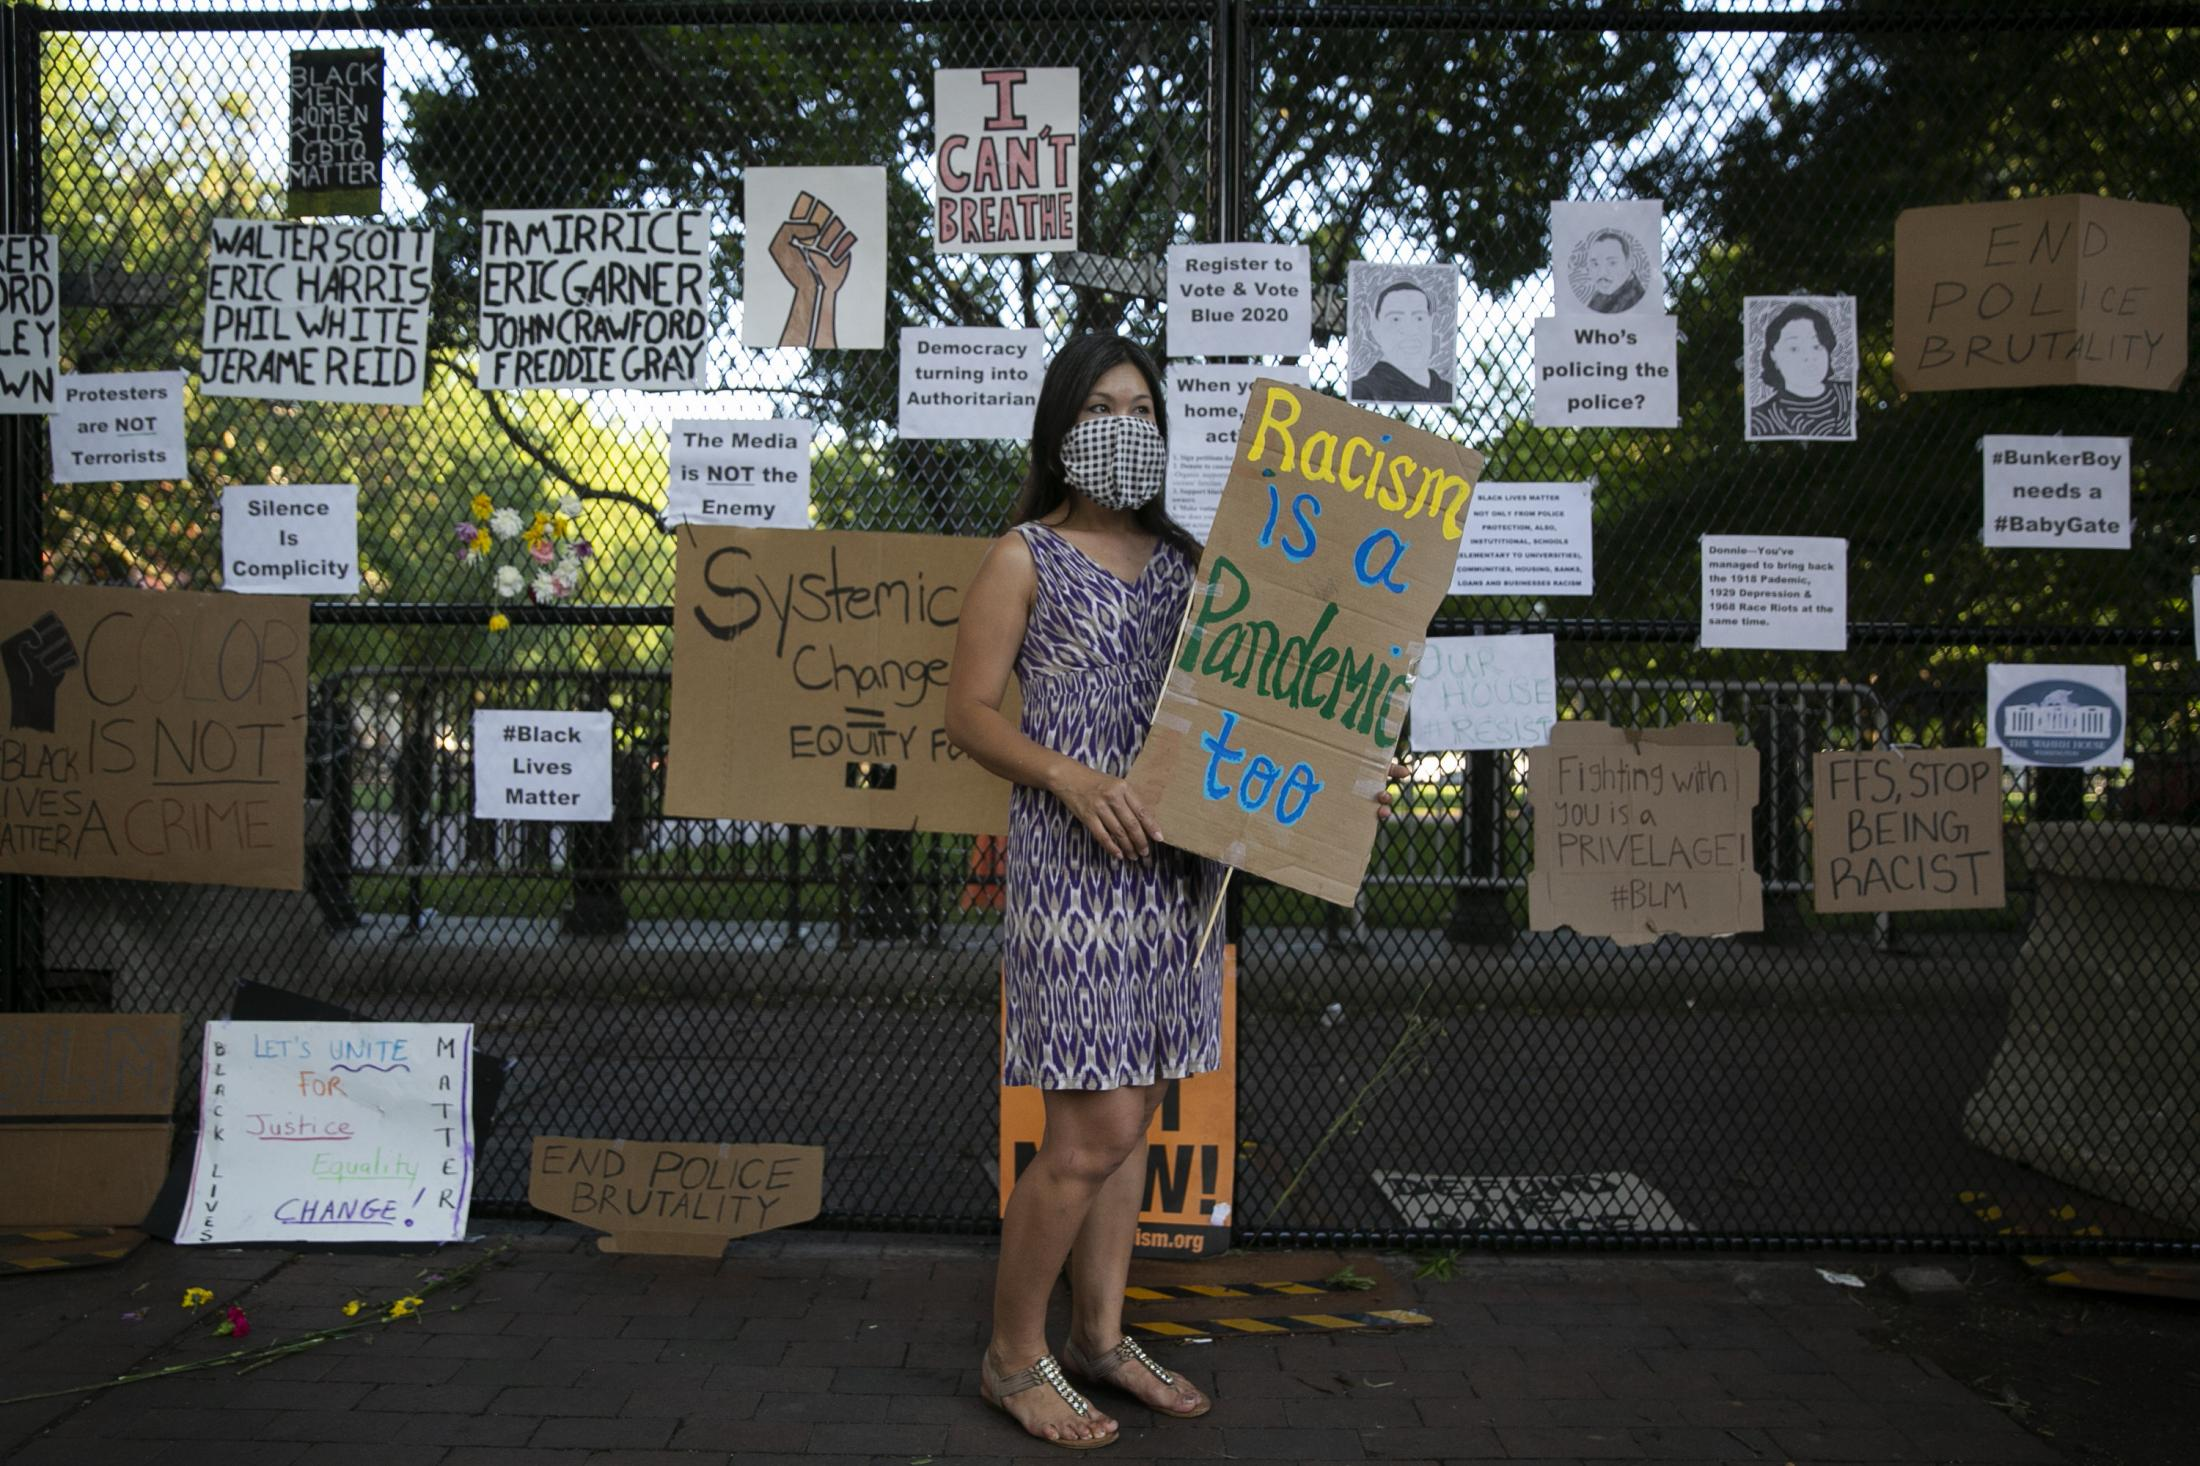 """Washington, D.C. resident Sara gets up at eight in the morning and puts up signs on the security fence surrounding the White House. She makes a sign which says, """"Racism is a pandemic too"""", as a response to both the ongoing series of protests against the killing of George Floyd and hate crimes towards Asians for being blamed for the spread of coronavirus. """"I was never protesting until the protesters were forced to leave,"""" Sara says, """"That to me is the First Amendment right to be heard."""""""